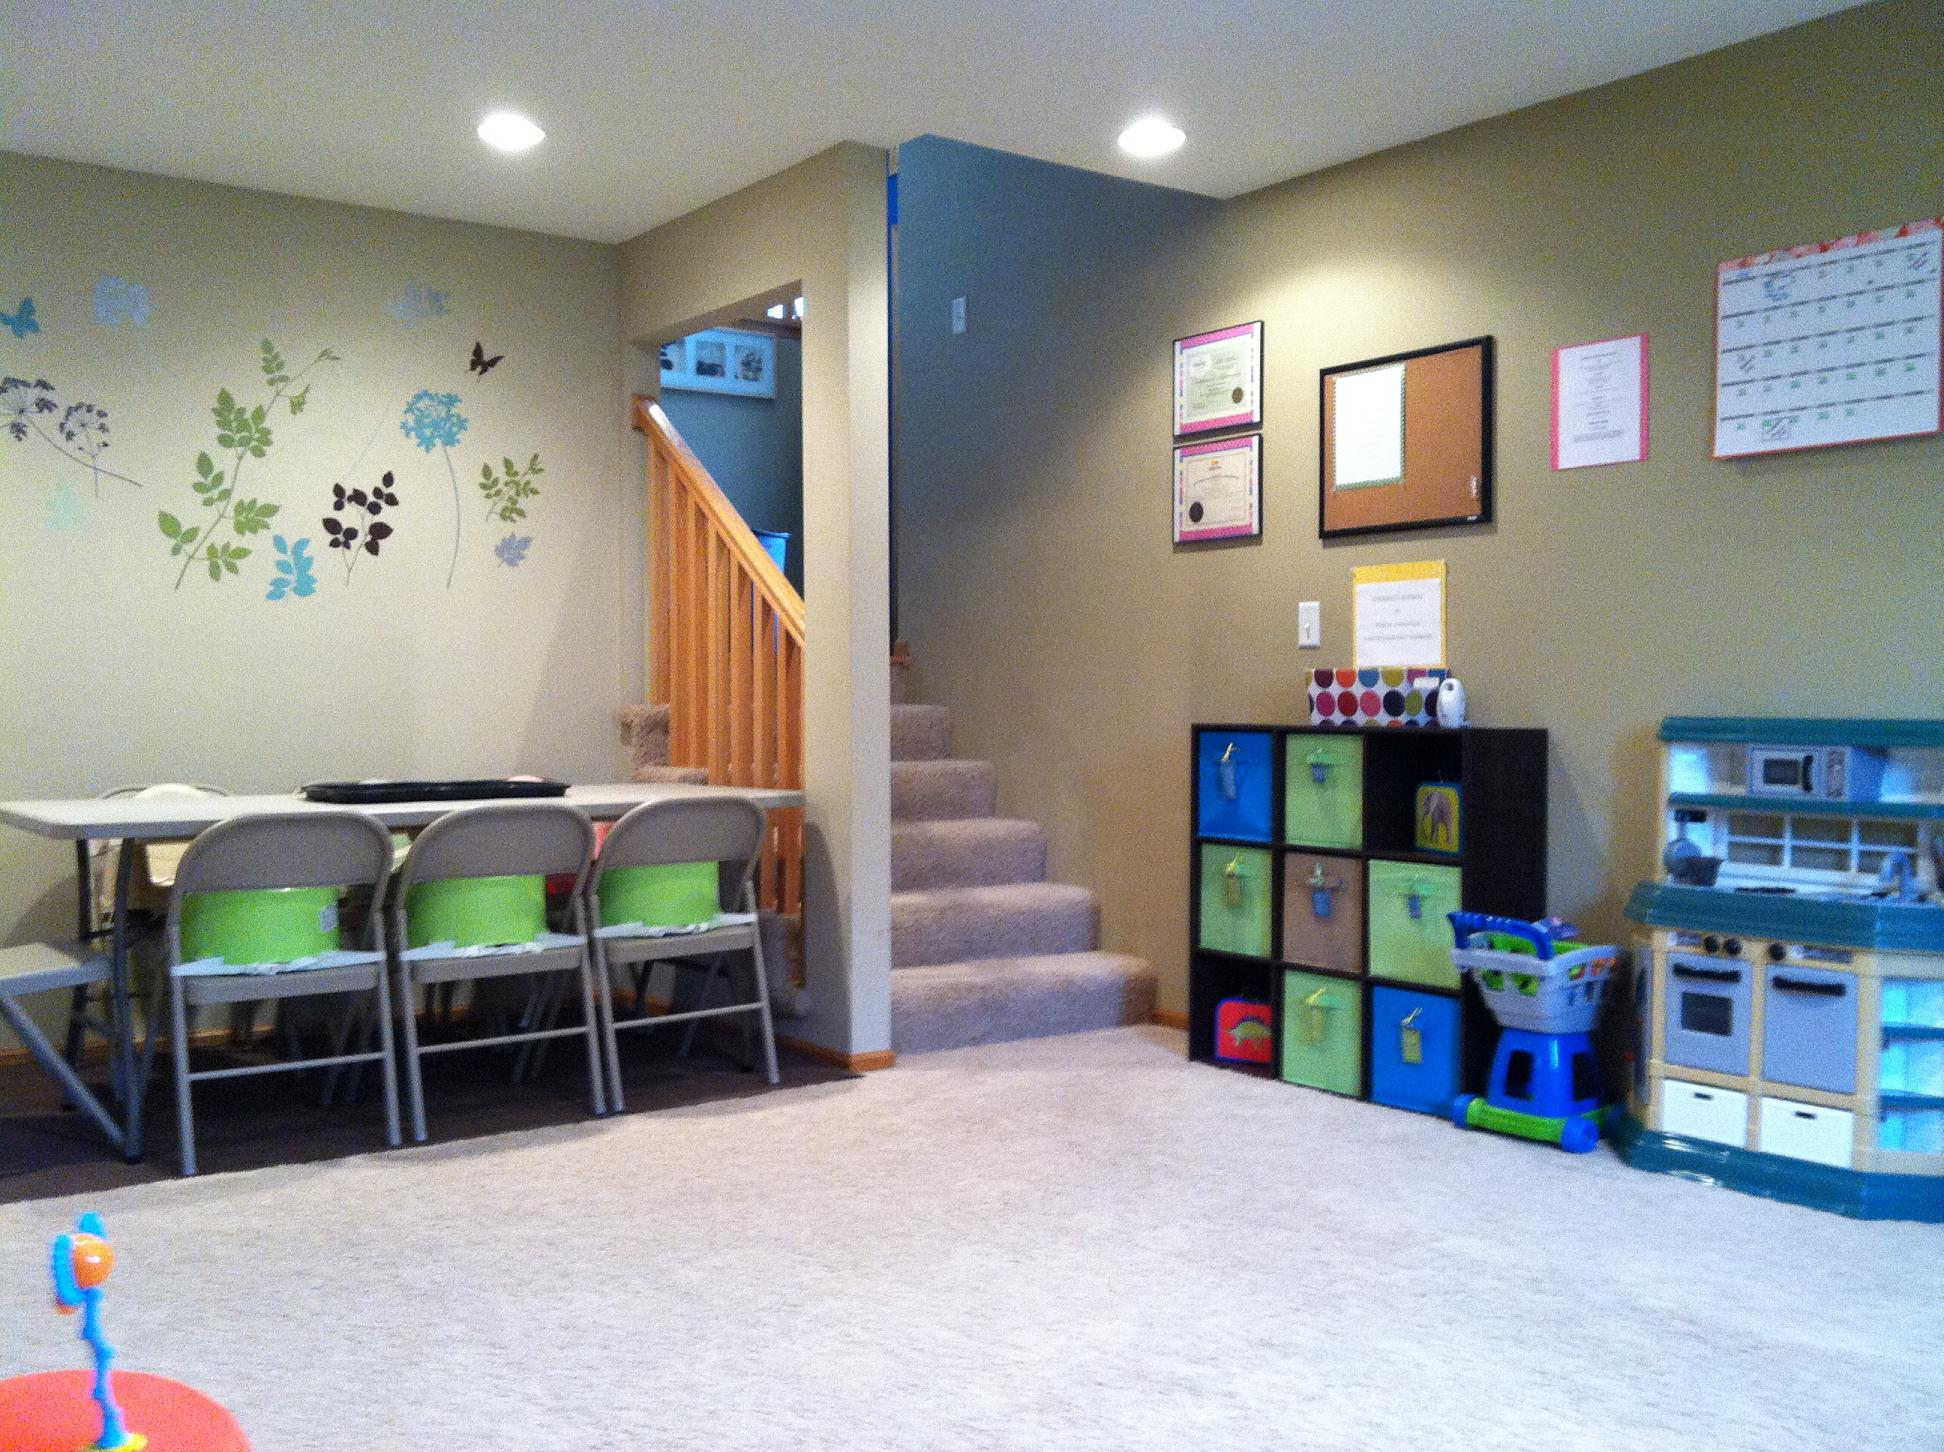 1000 images about home daycare ideas on pinterest for House arrangement ideas